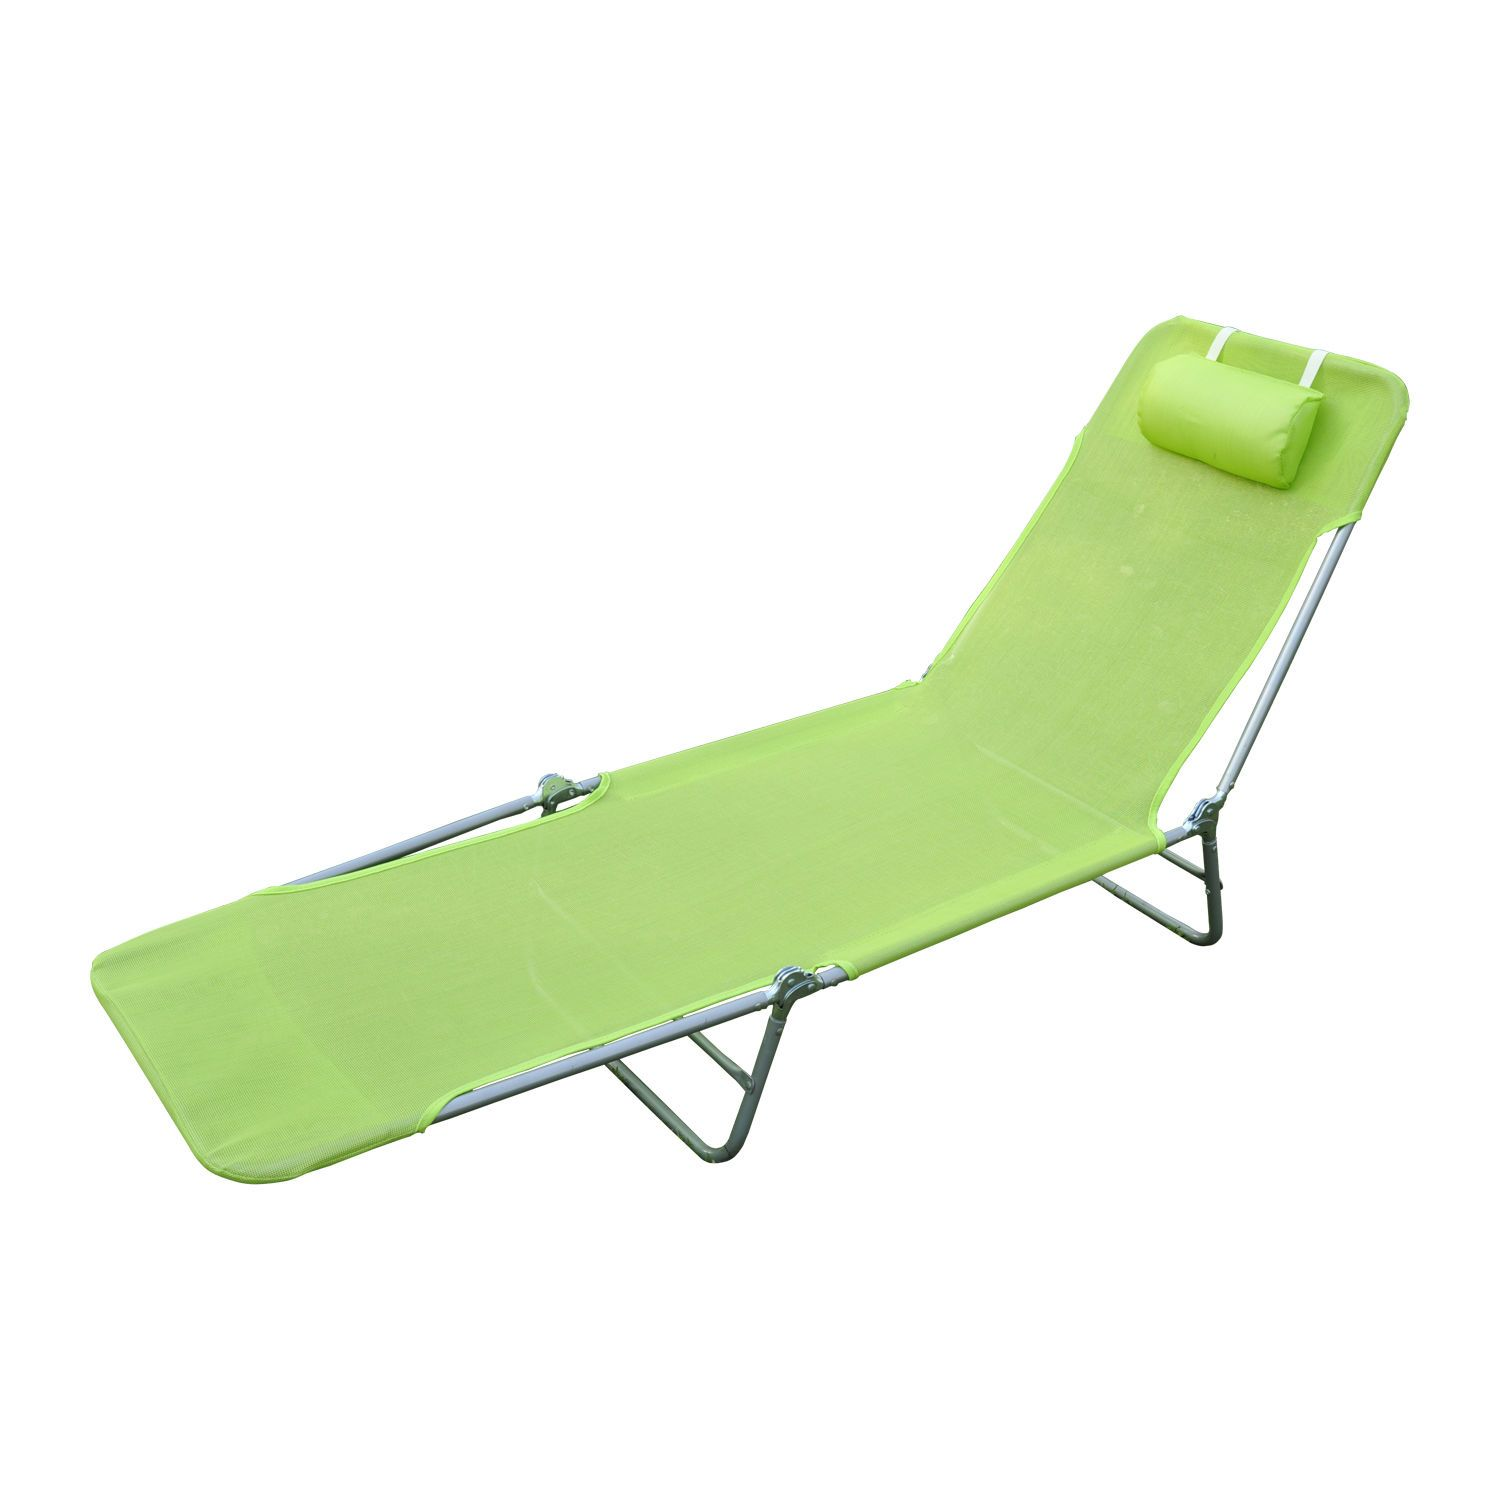 Foldable chaise lounge adjustable patio cot reclining beach chair w